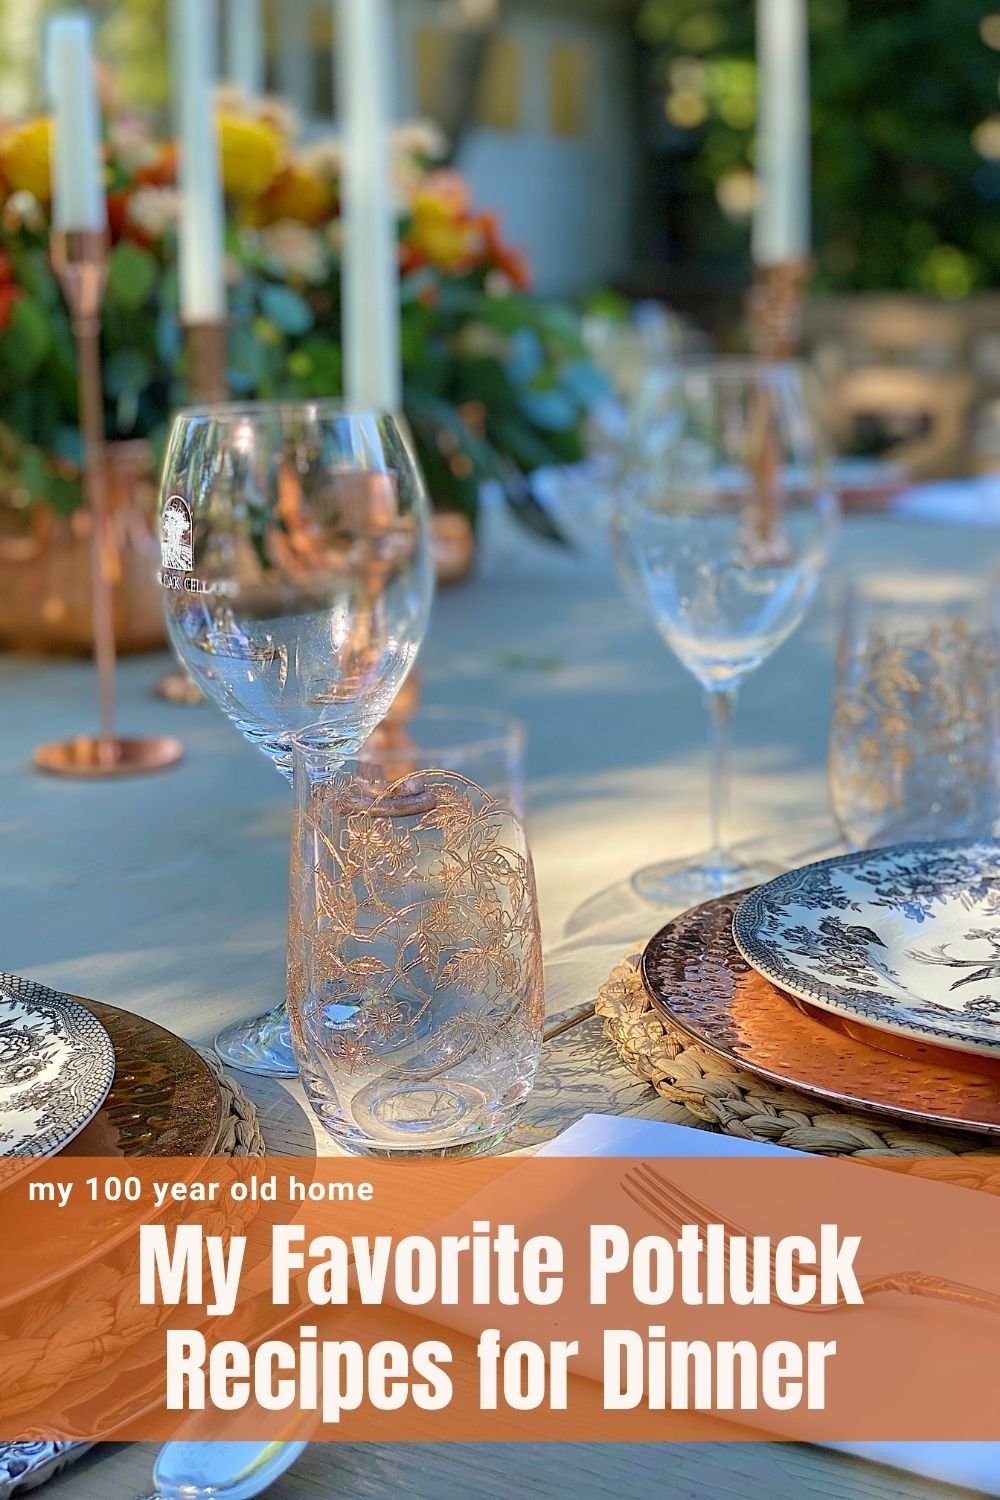 We hosted our dinner club and to make it easy we served potluck. Today I am delighted to share some of my favorite potluck recipes.